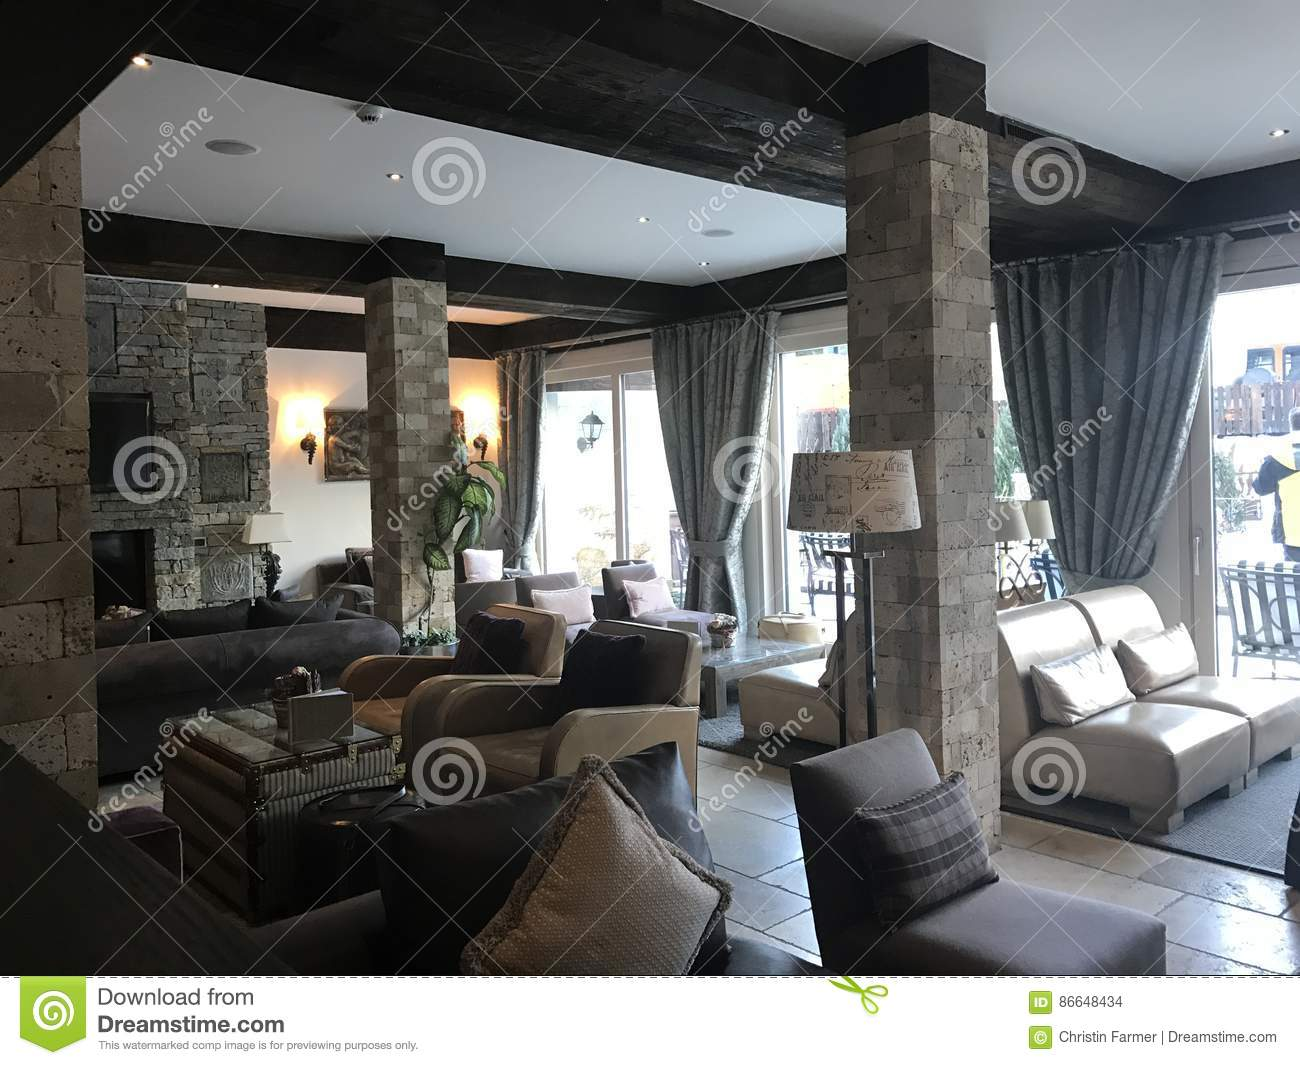 Hotel Lounge editorial stock image. Image of modern, hotel ...